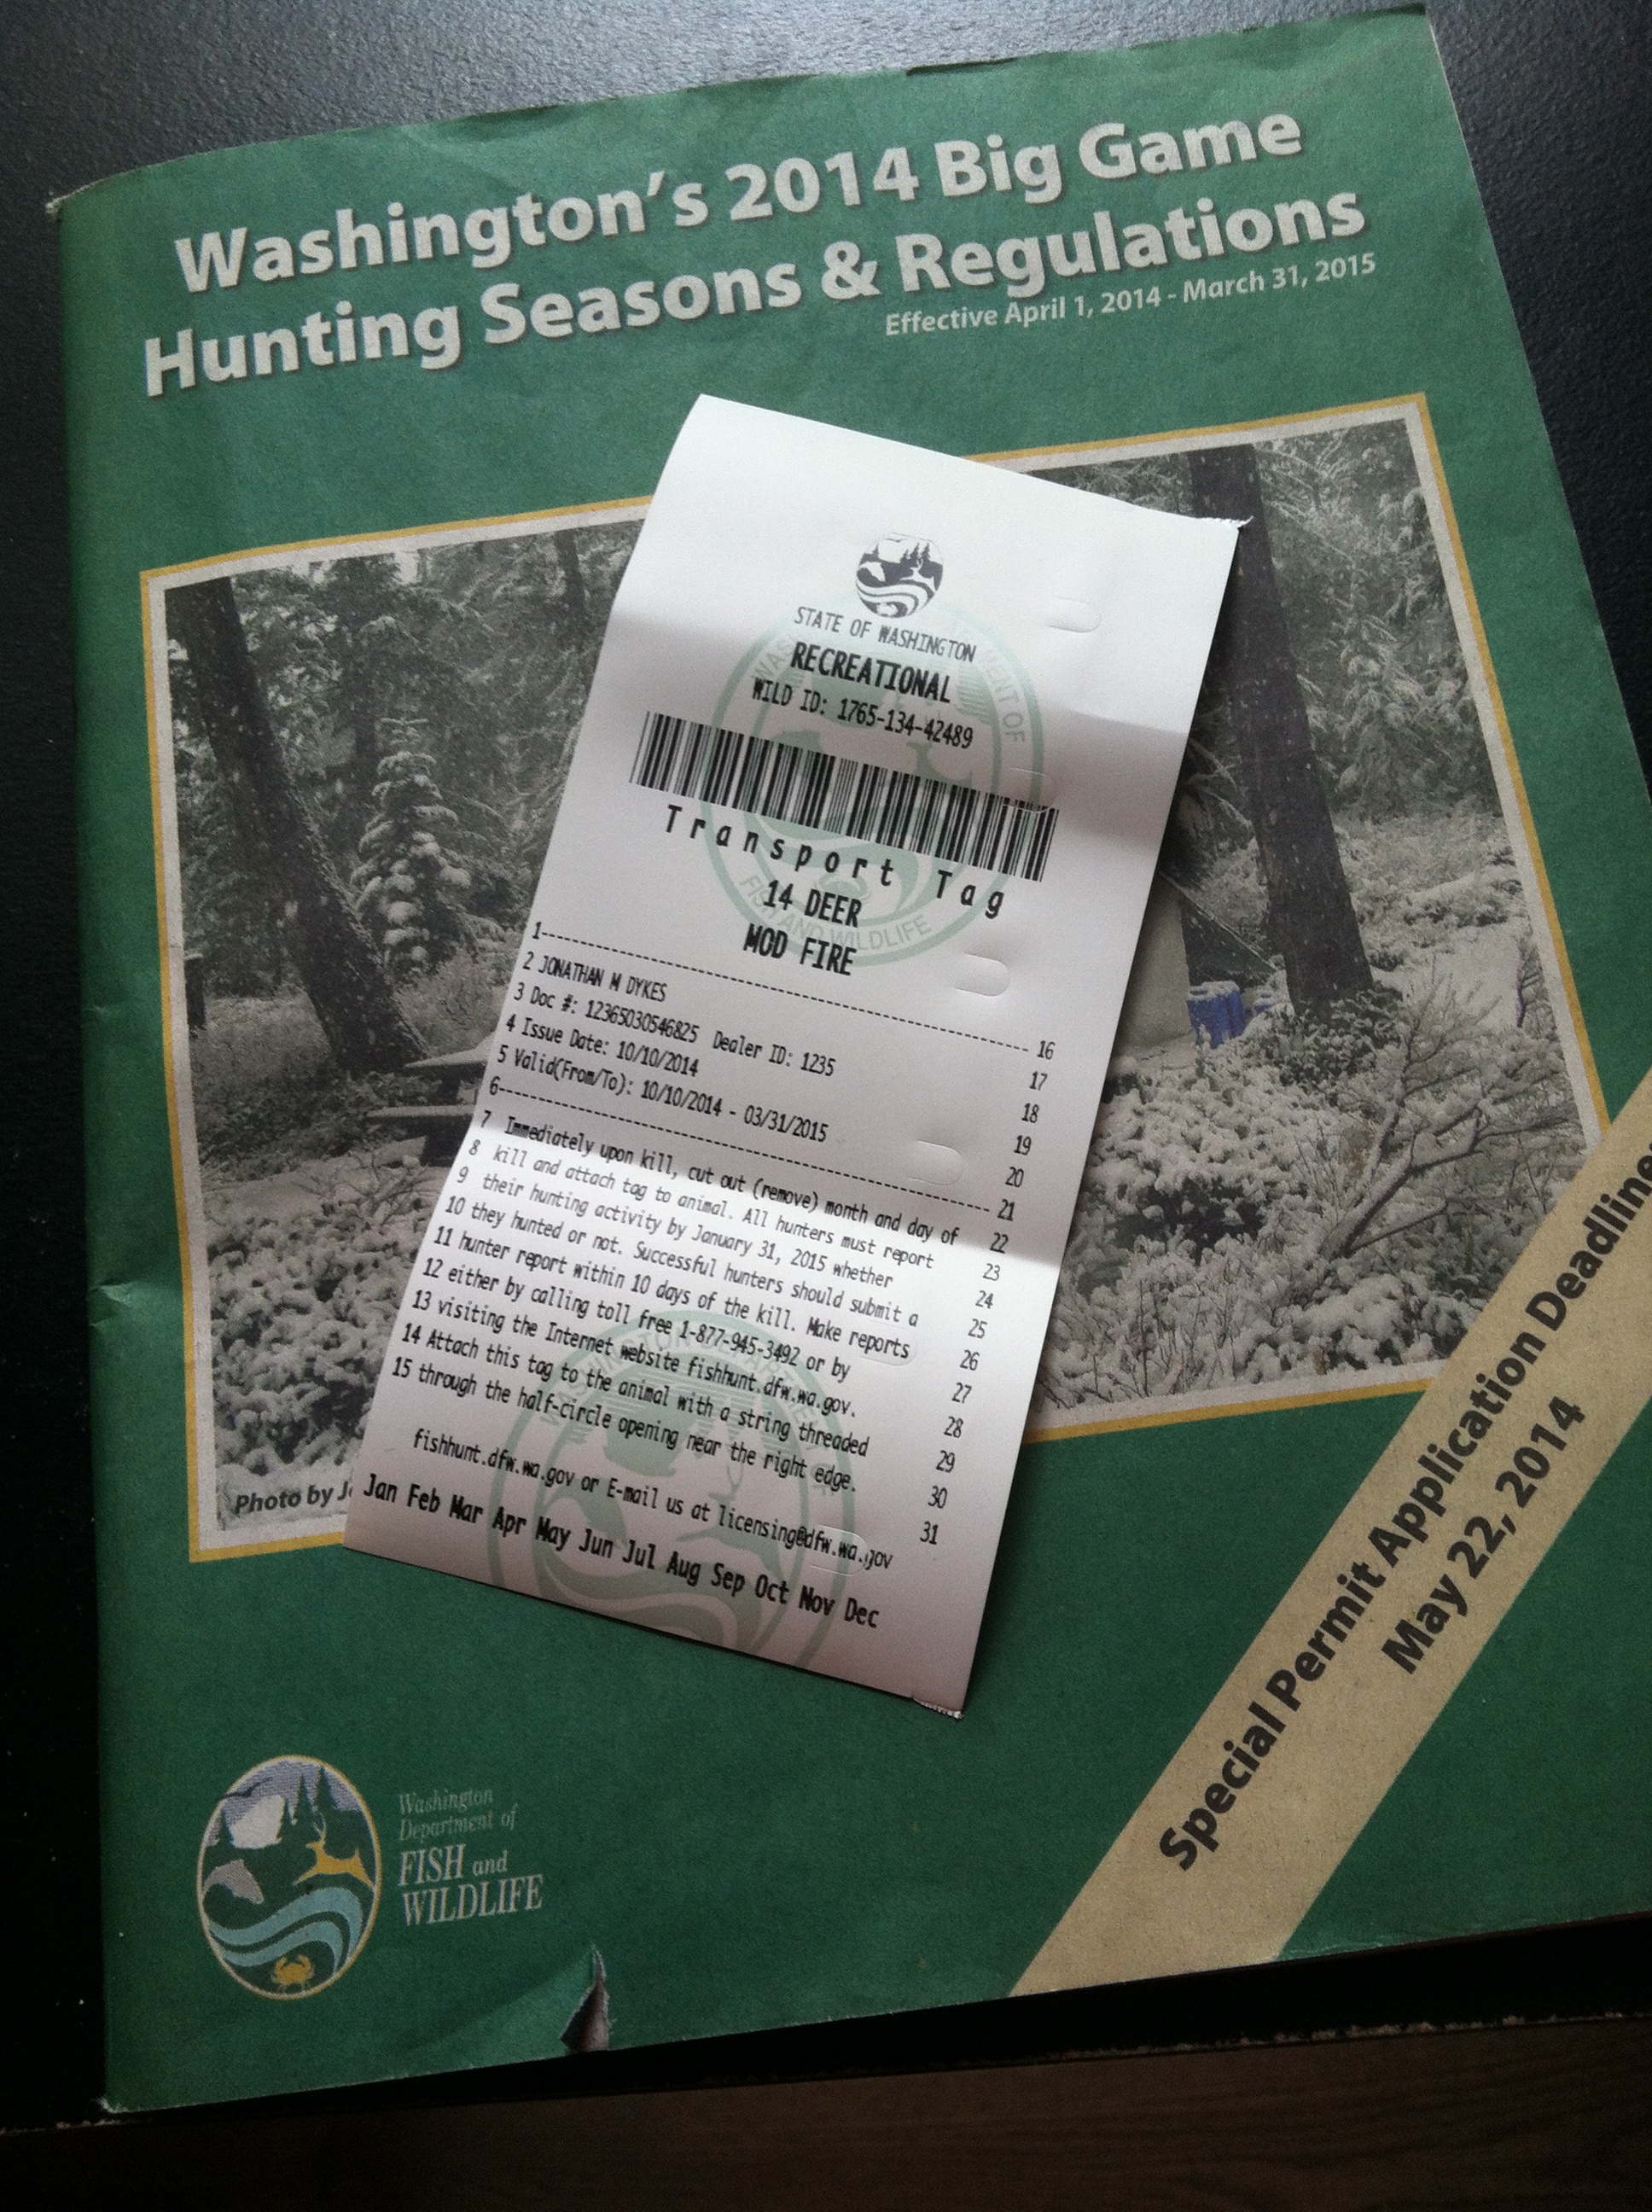 Mission alaska adventure hunting lifestyle for Washington state fishing regulations